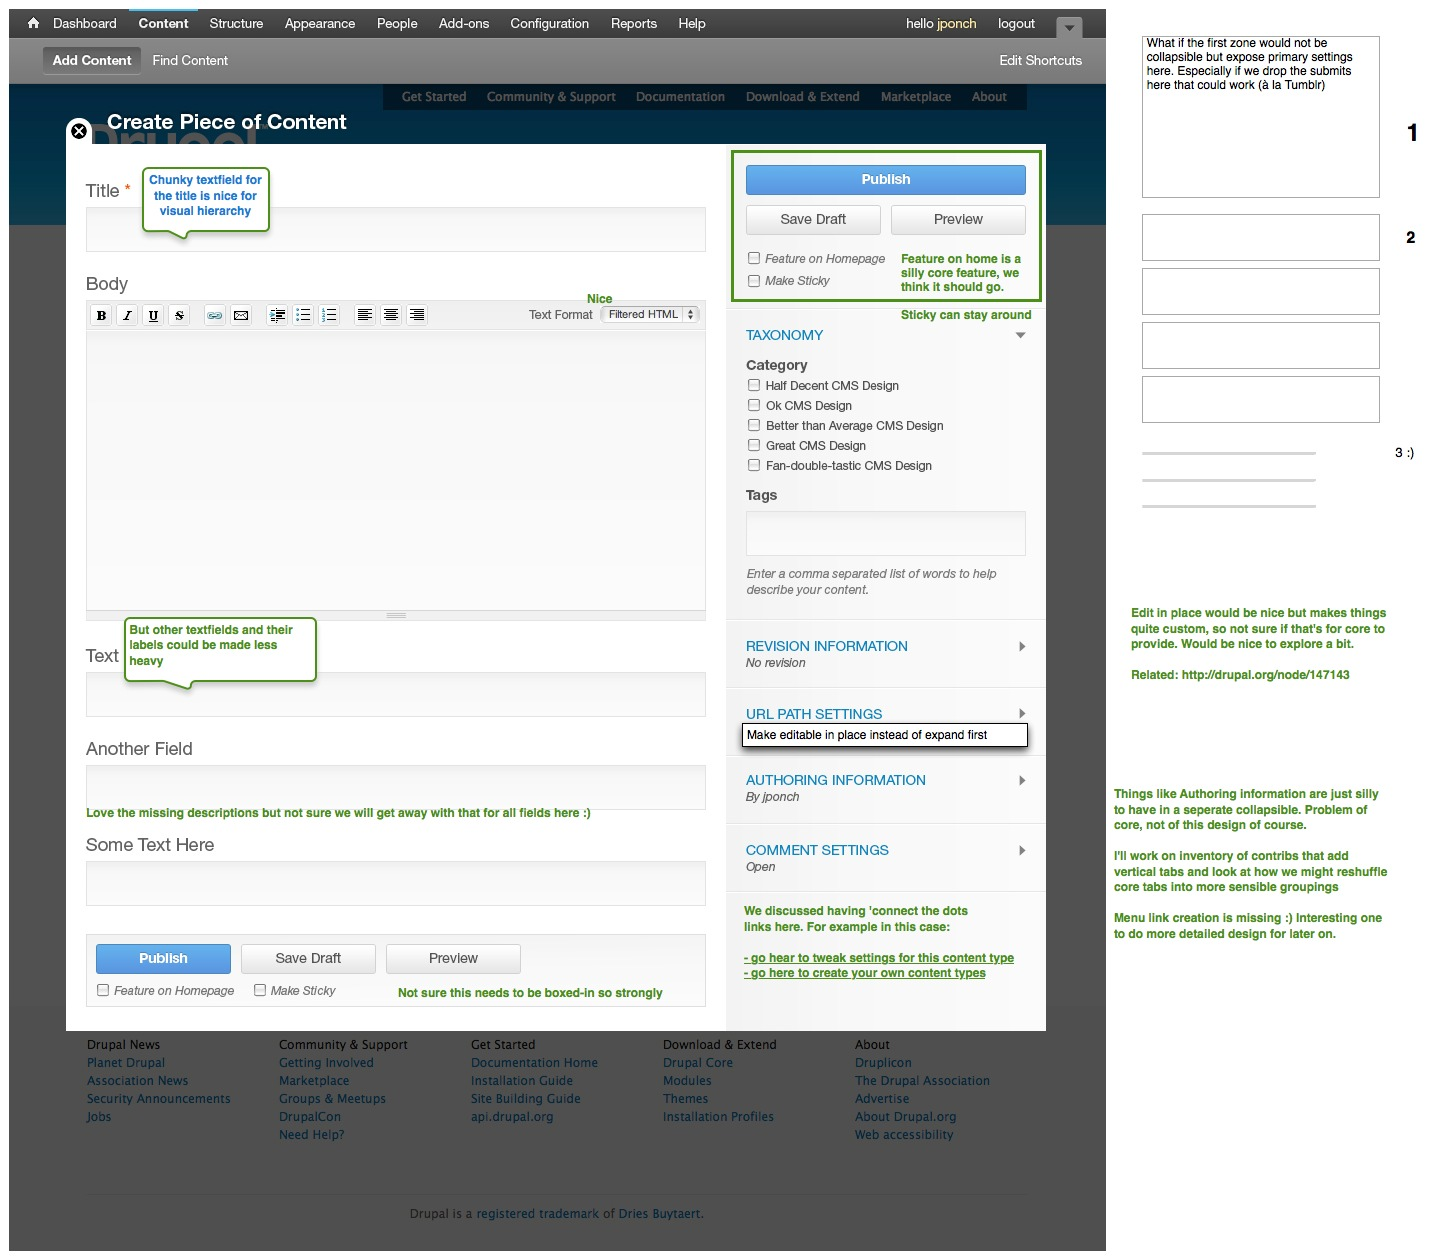 Design iterations for the content creation page   Drupal Groups